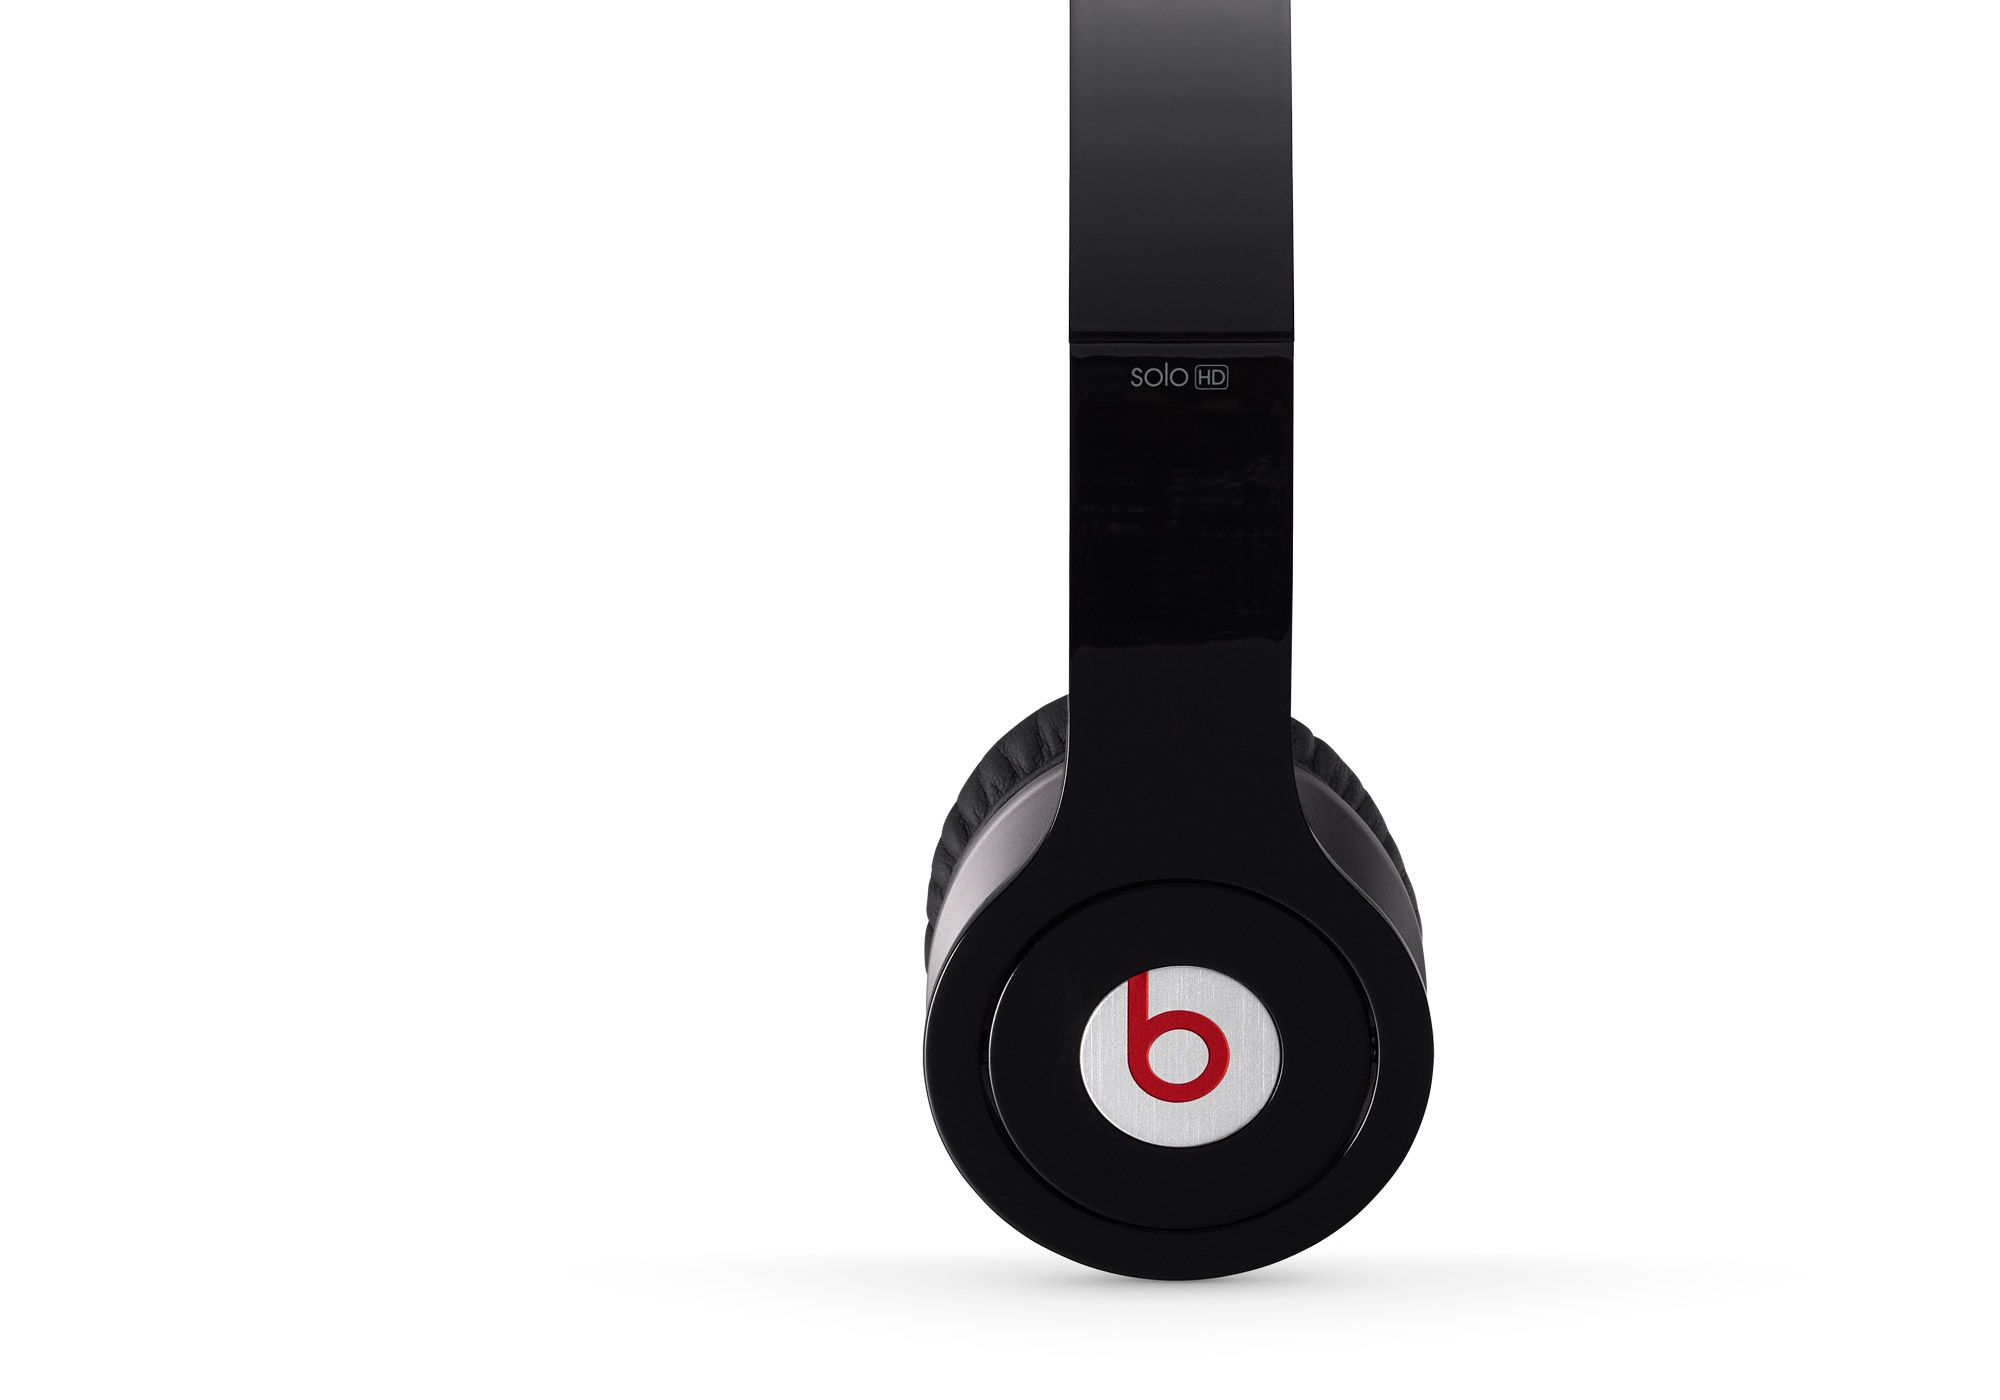 On Ear Headphones Beats Solo Hd With Built In Mic Have A Dps Sound Enhancing Profile Want To Make This Device Sound Be Beats Solo Hd Beats By Dre Headphones